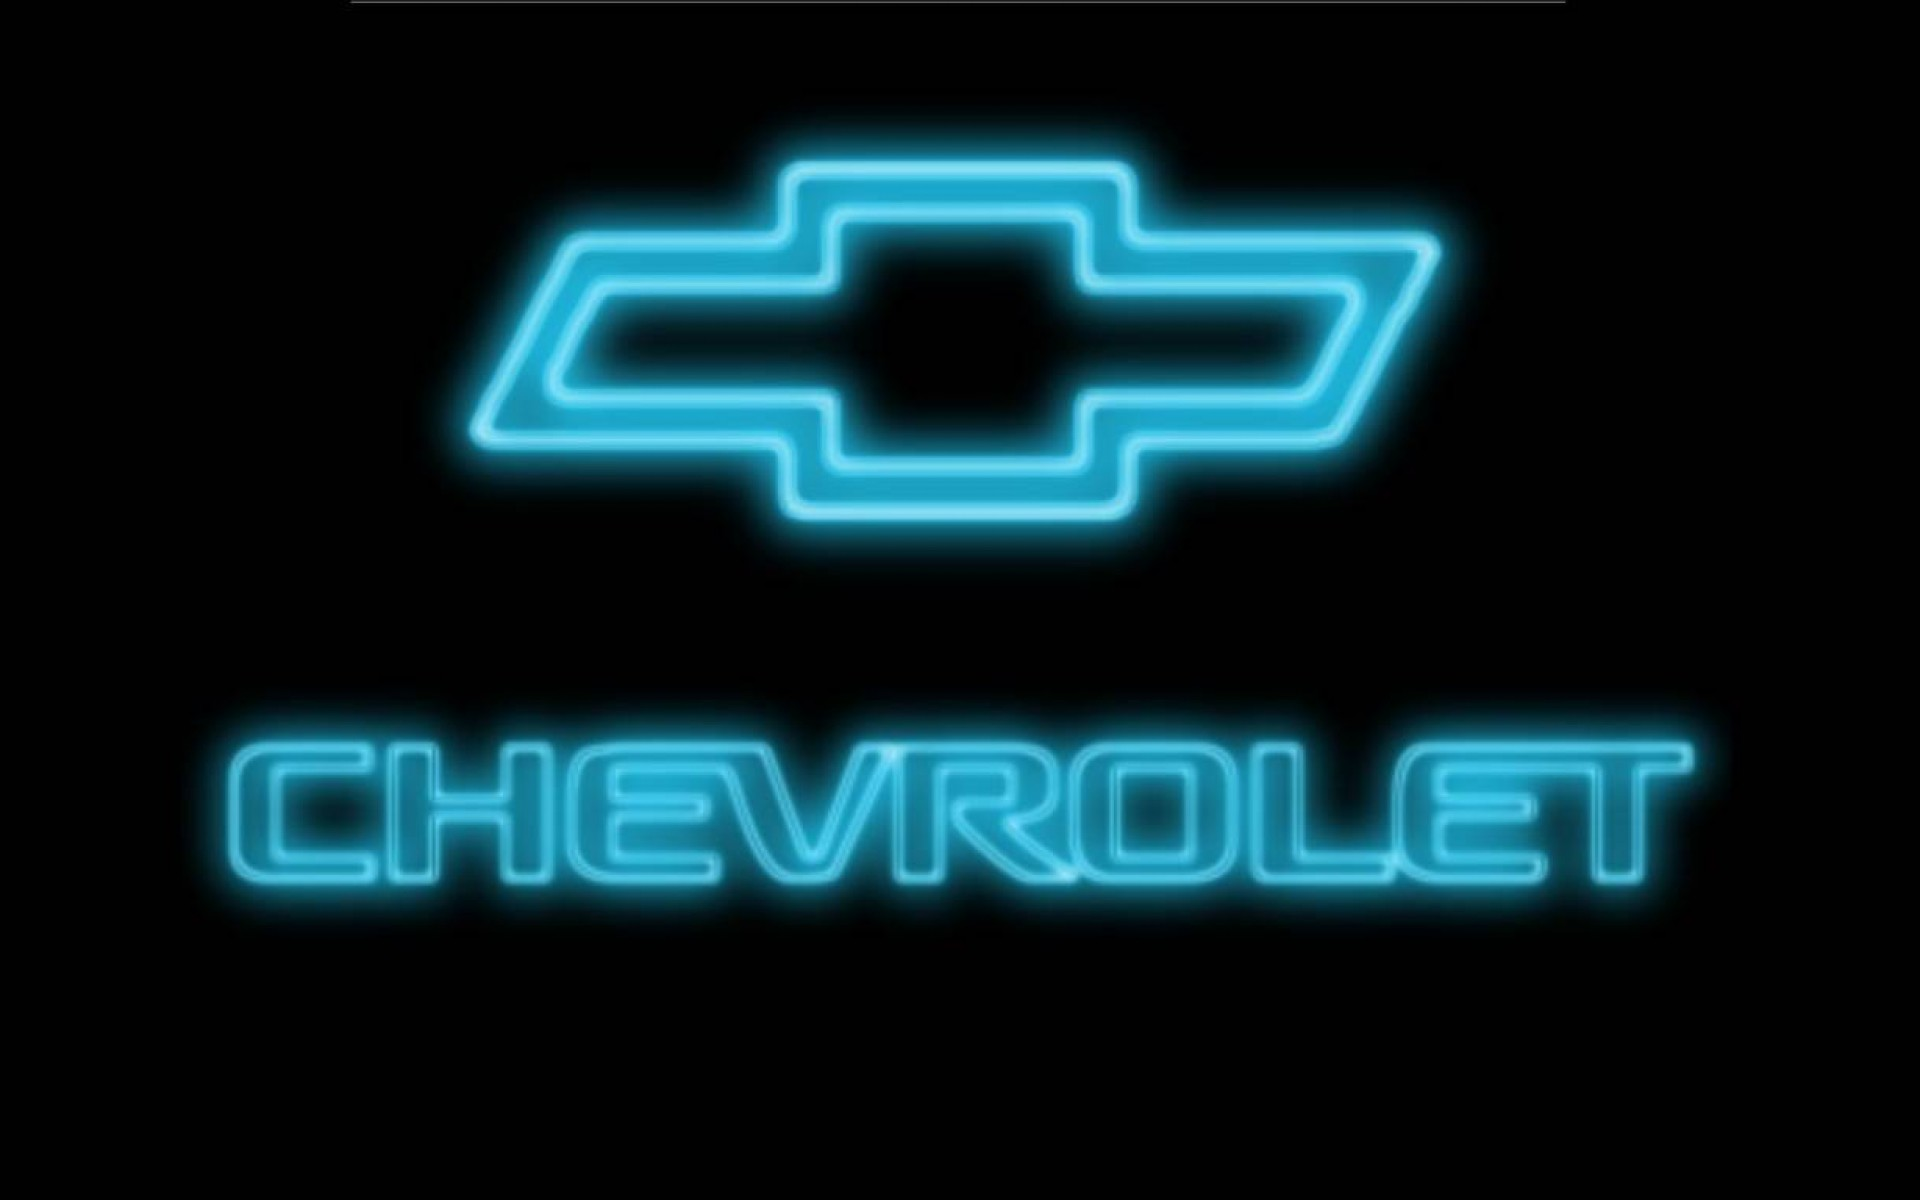 1920x1200 Chevy Logo Wallpaper iPhone. Neon Blue Chevy Logo